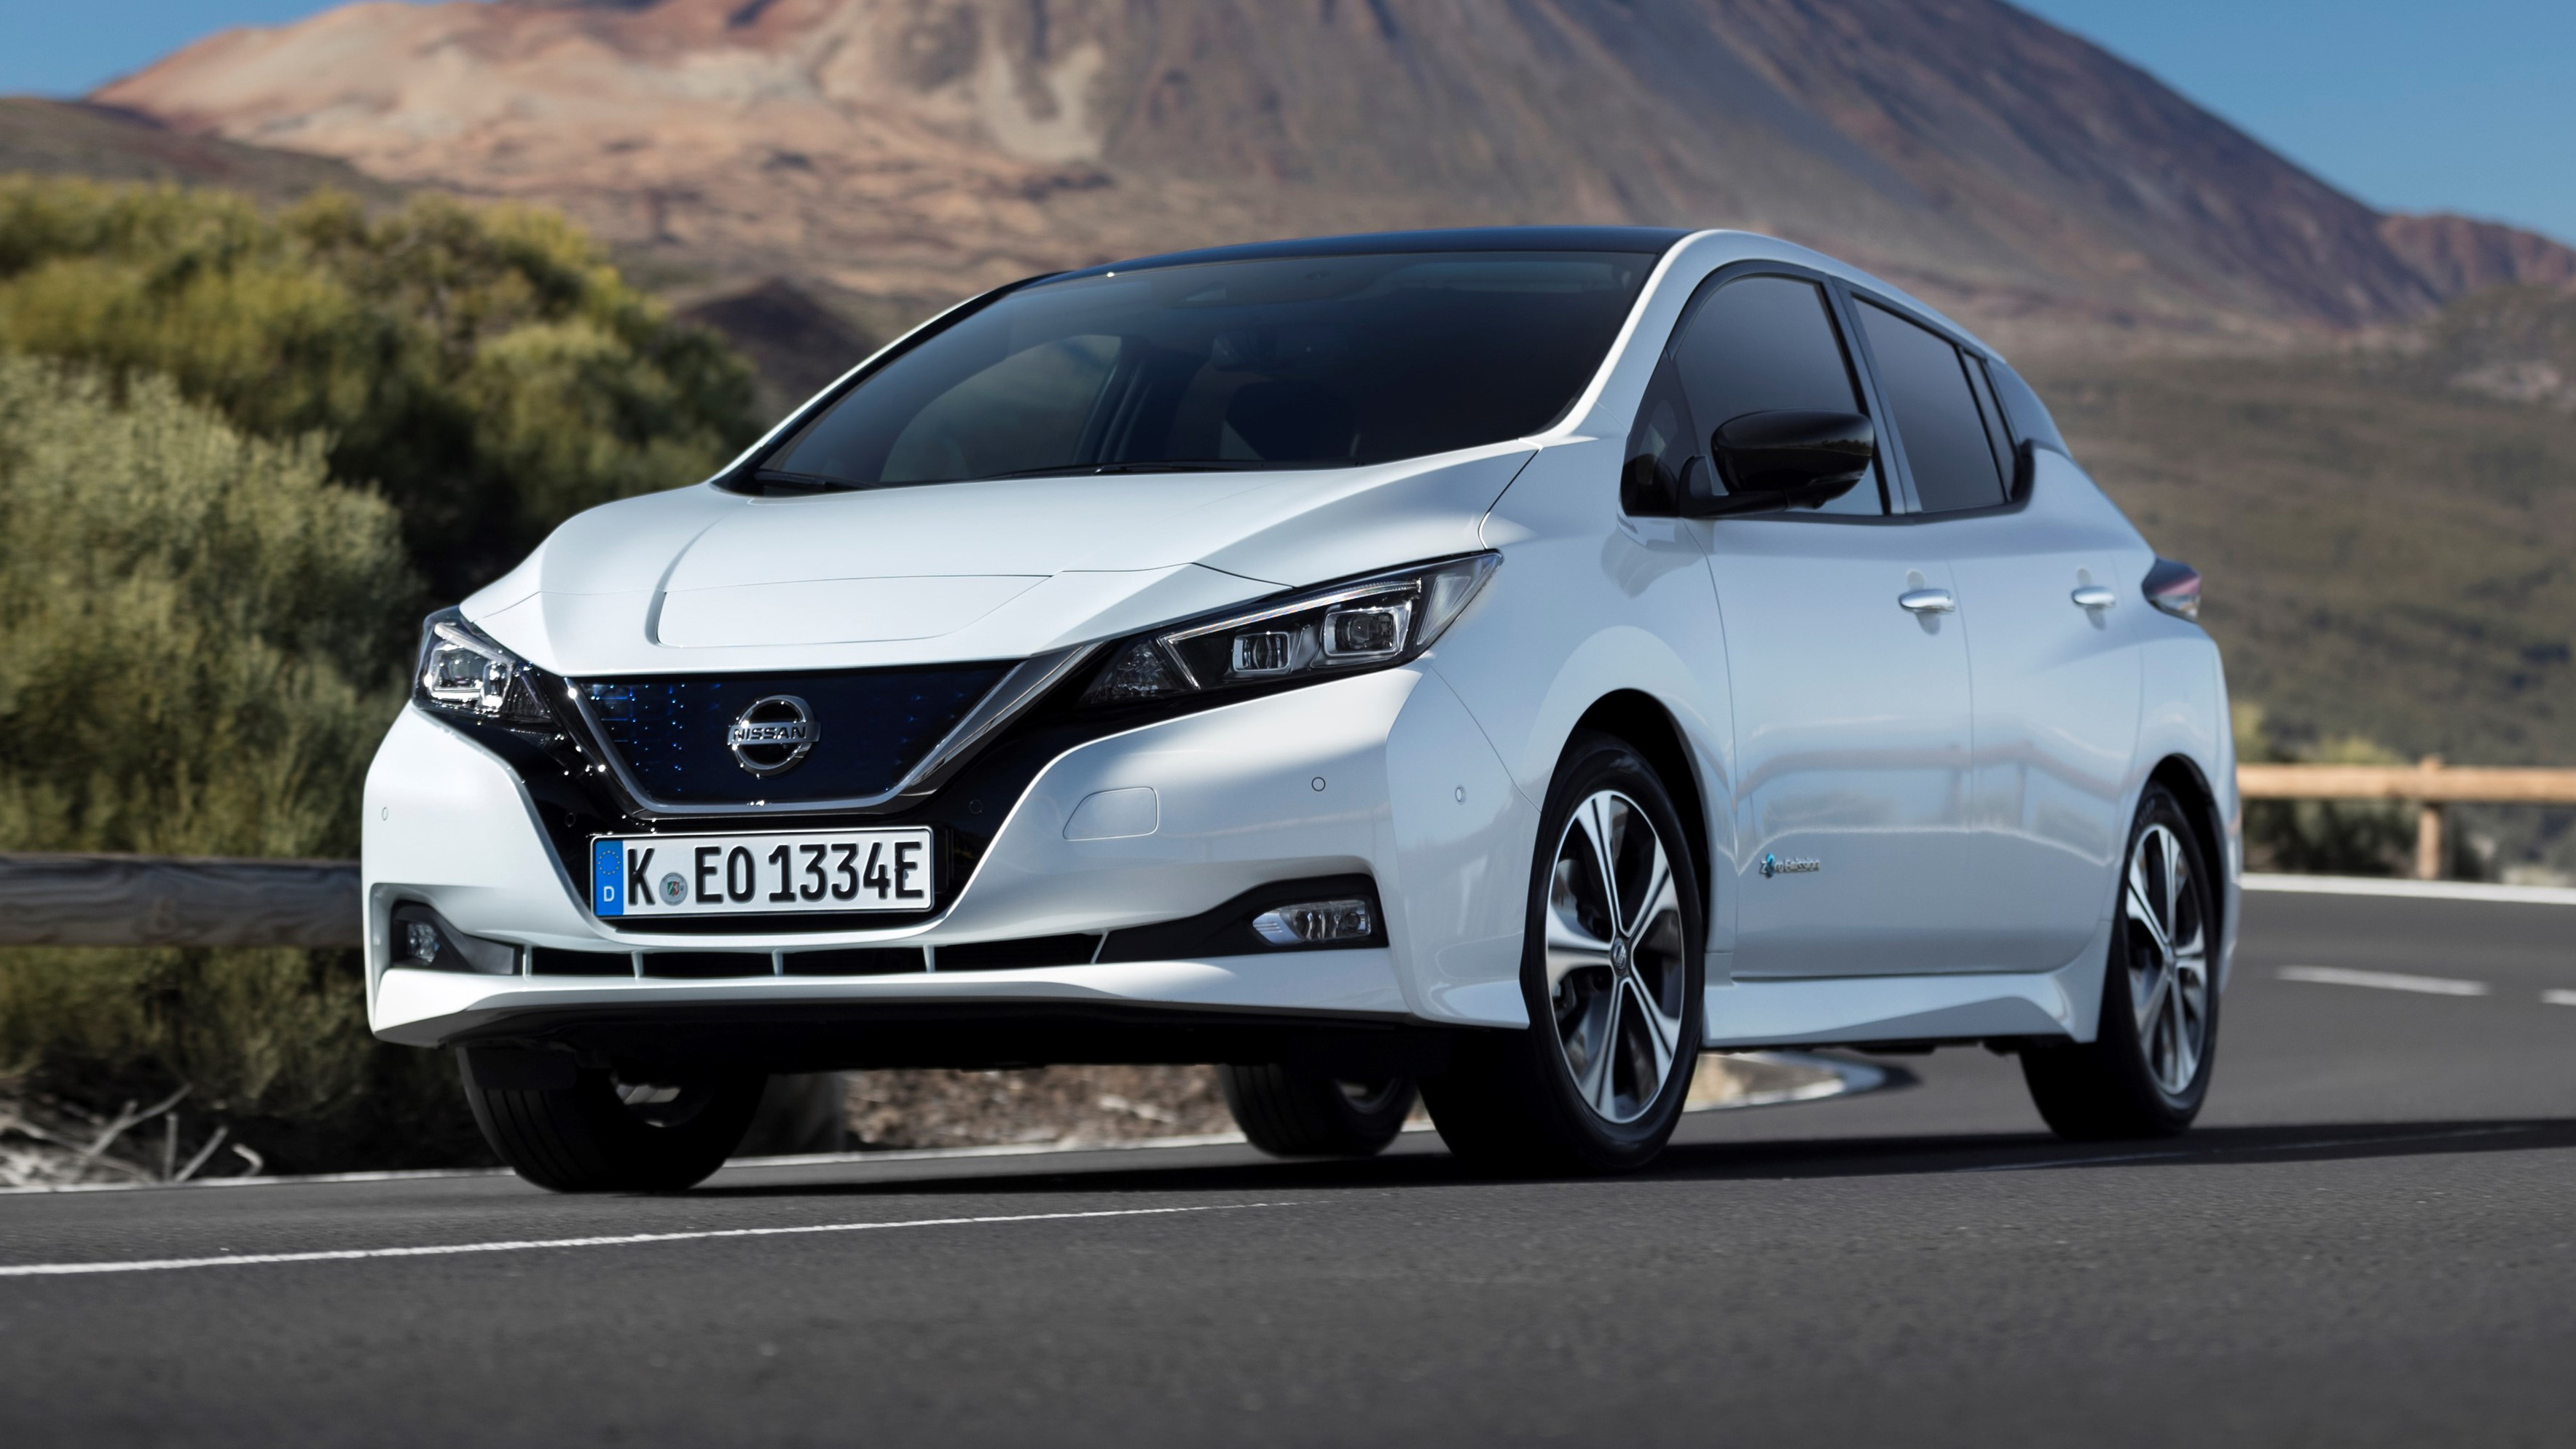 speedhunters the new dino nissan carbonare think electric dalle leaf